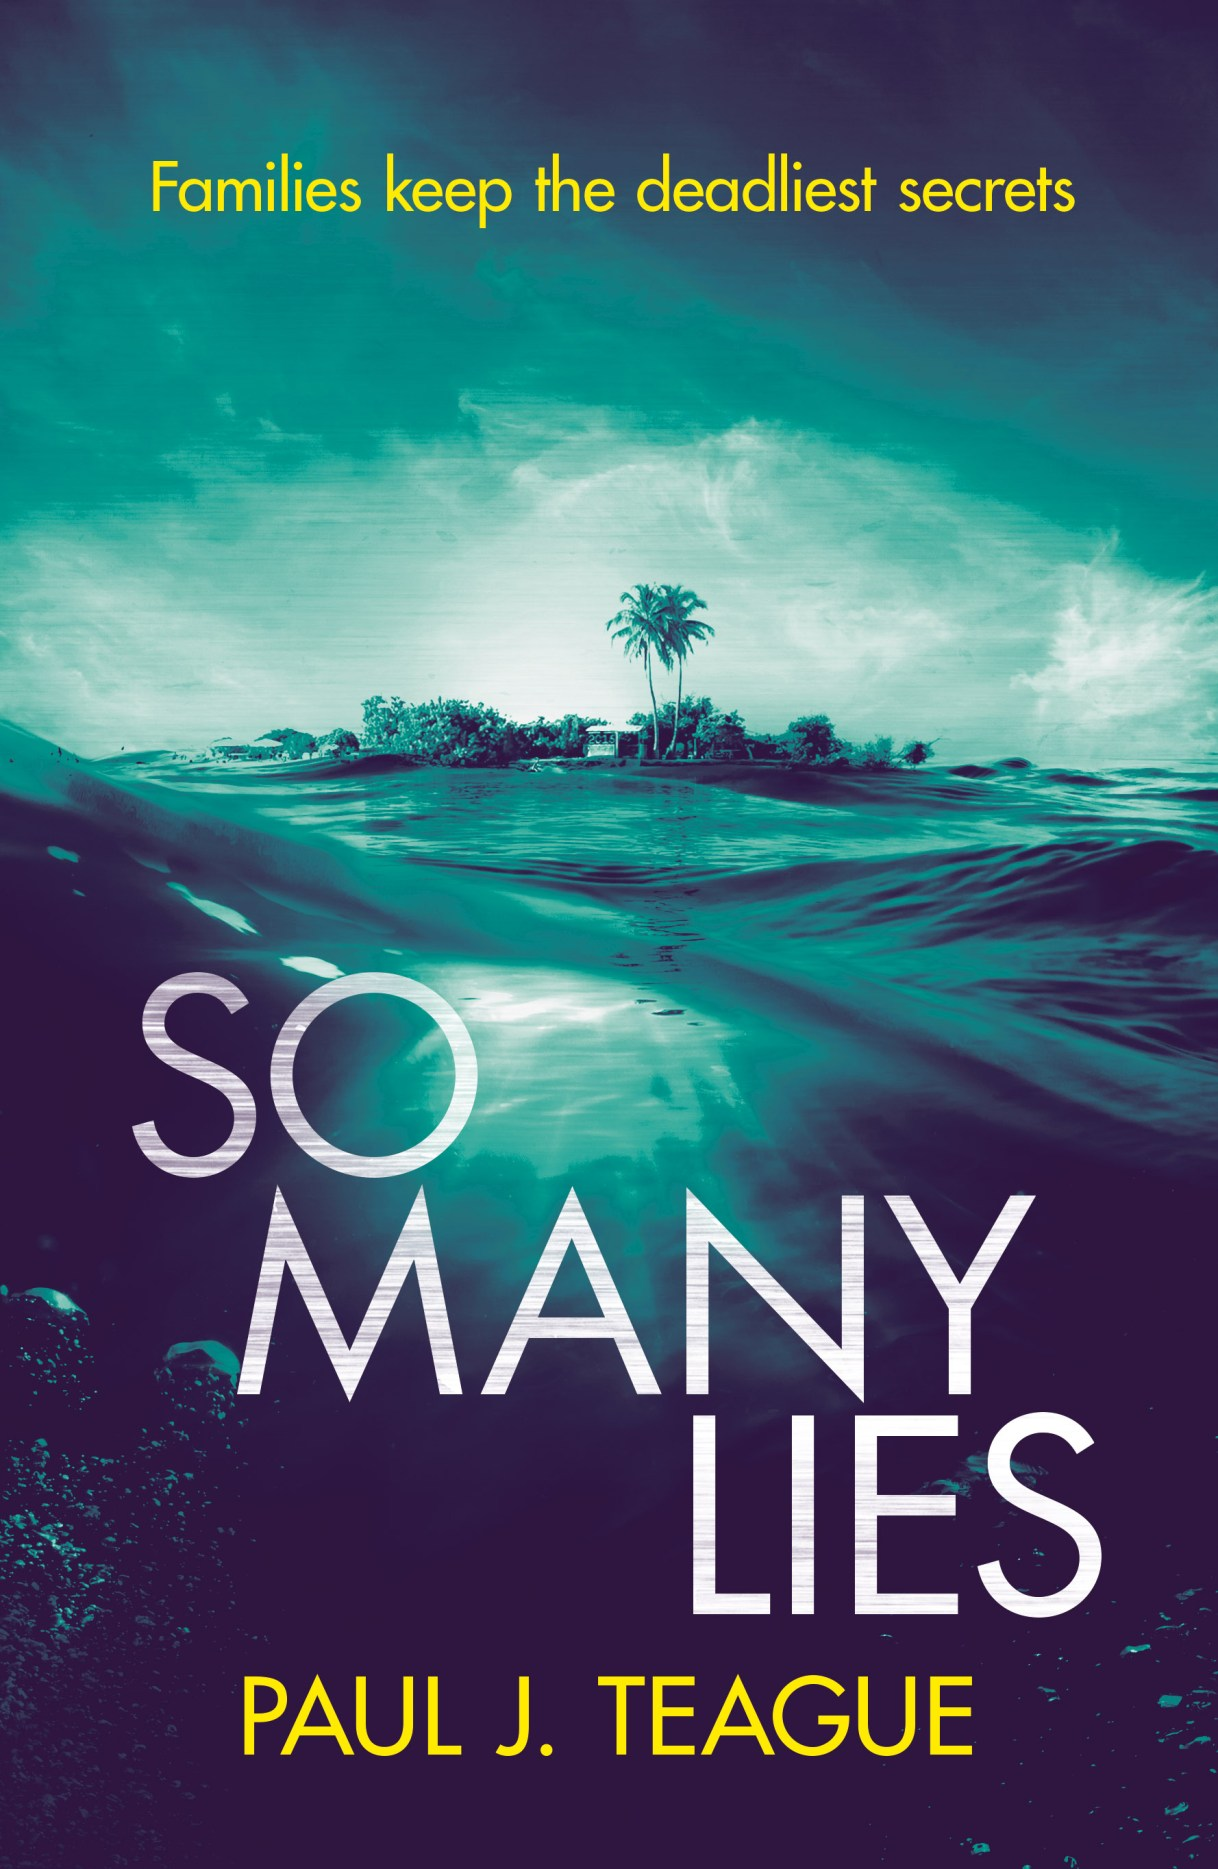 So Many Lies by Paul J. Teague - Book tour